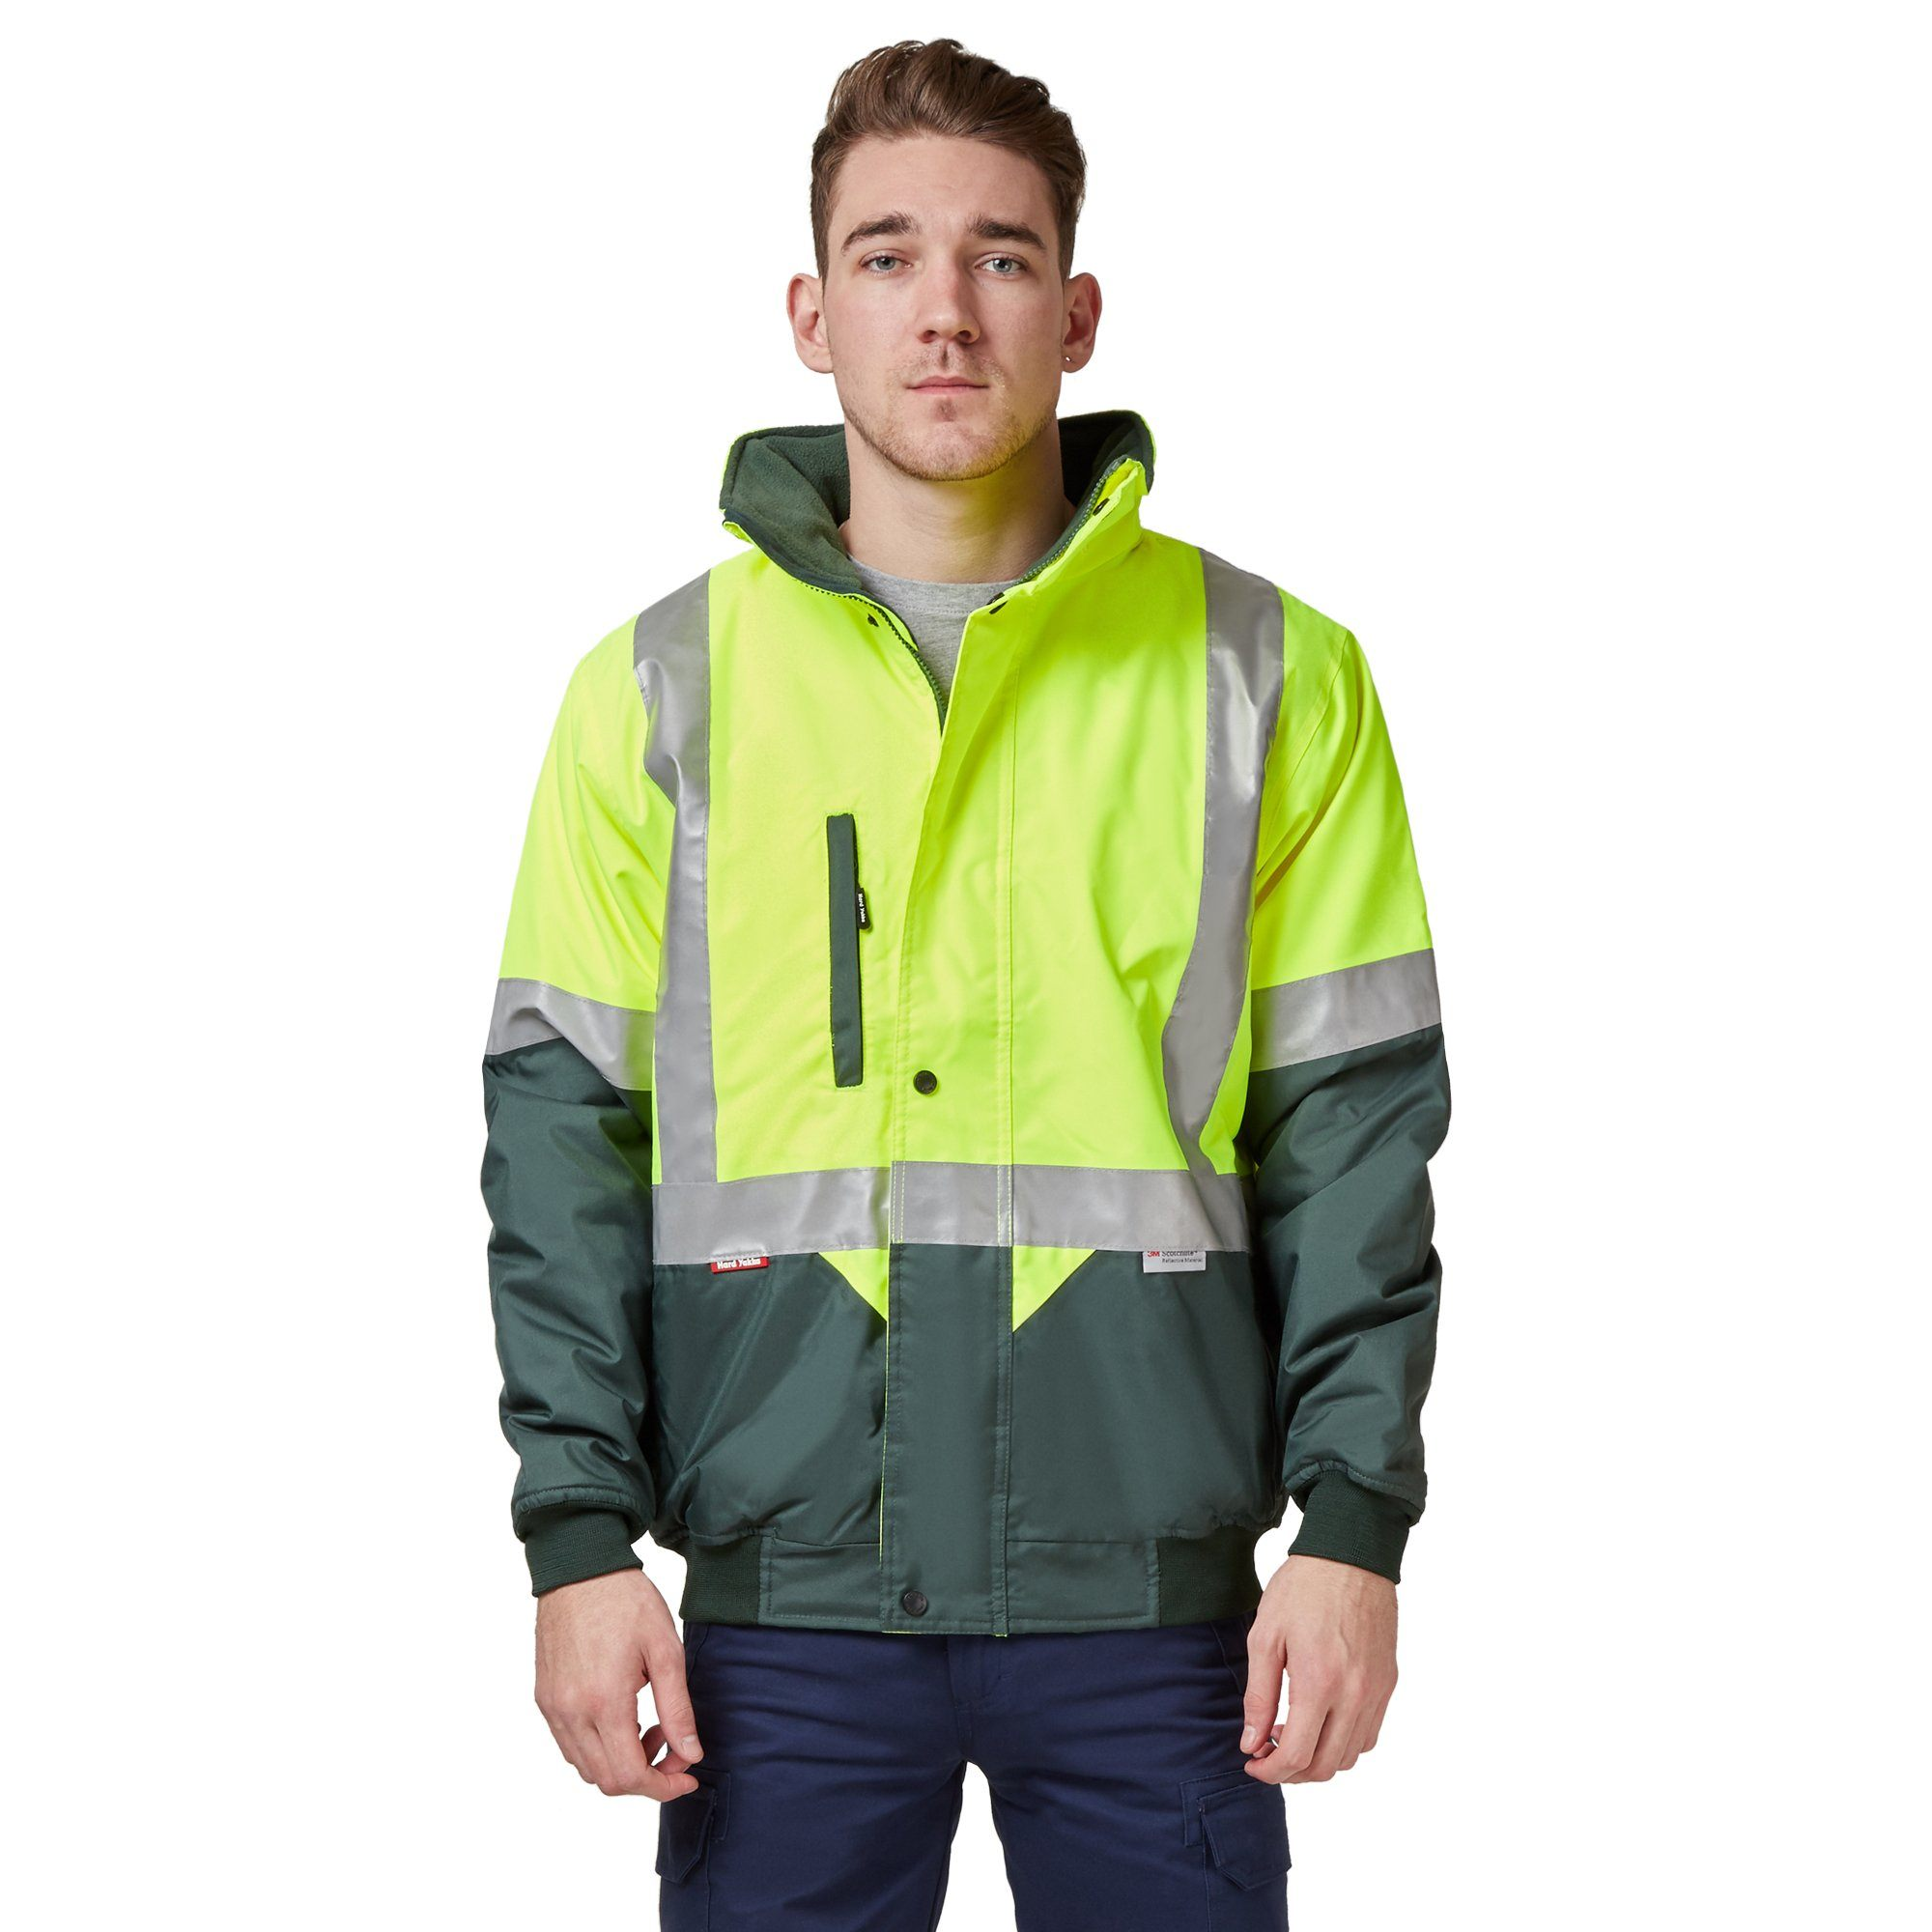 Hard Yakka Two Tone Quilted Flying Jacket - Yellow/Green Workwear Isbister & Co Wholesale